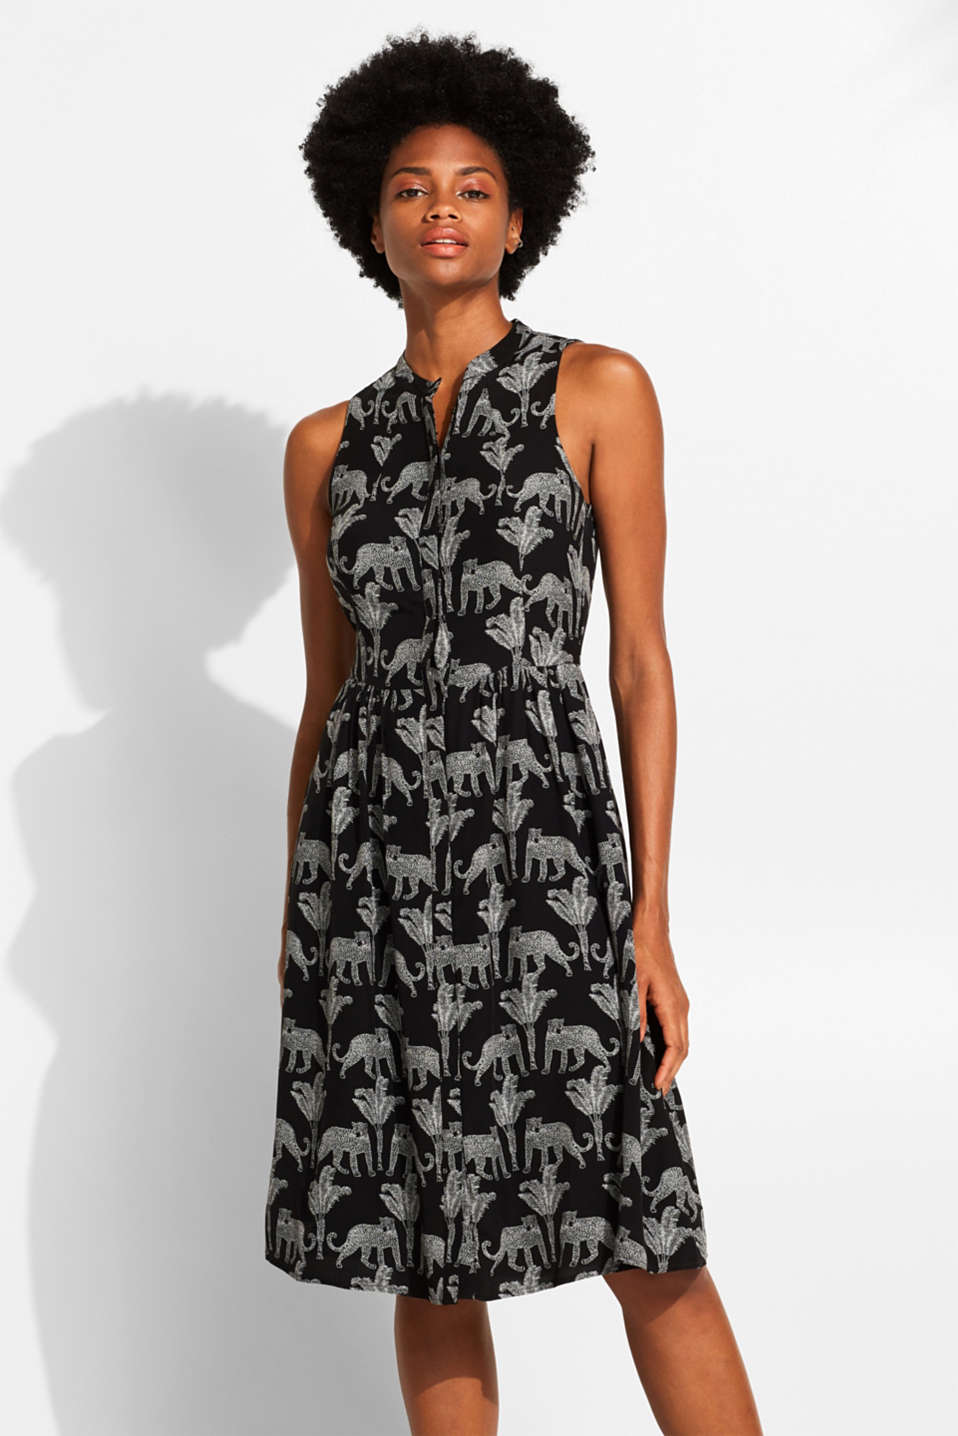 edc - Woven dress with a cheetah/palm print